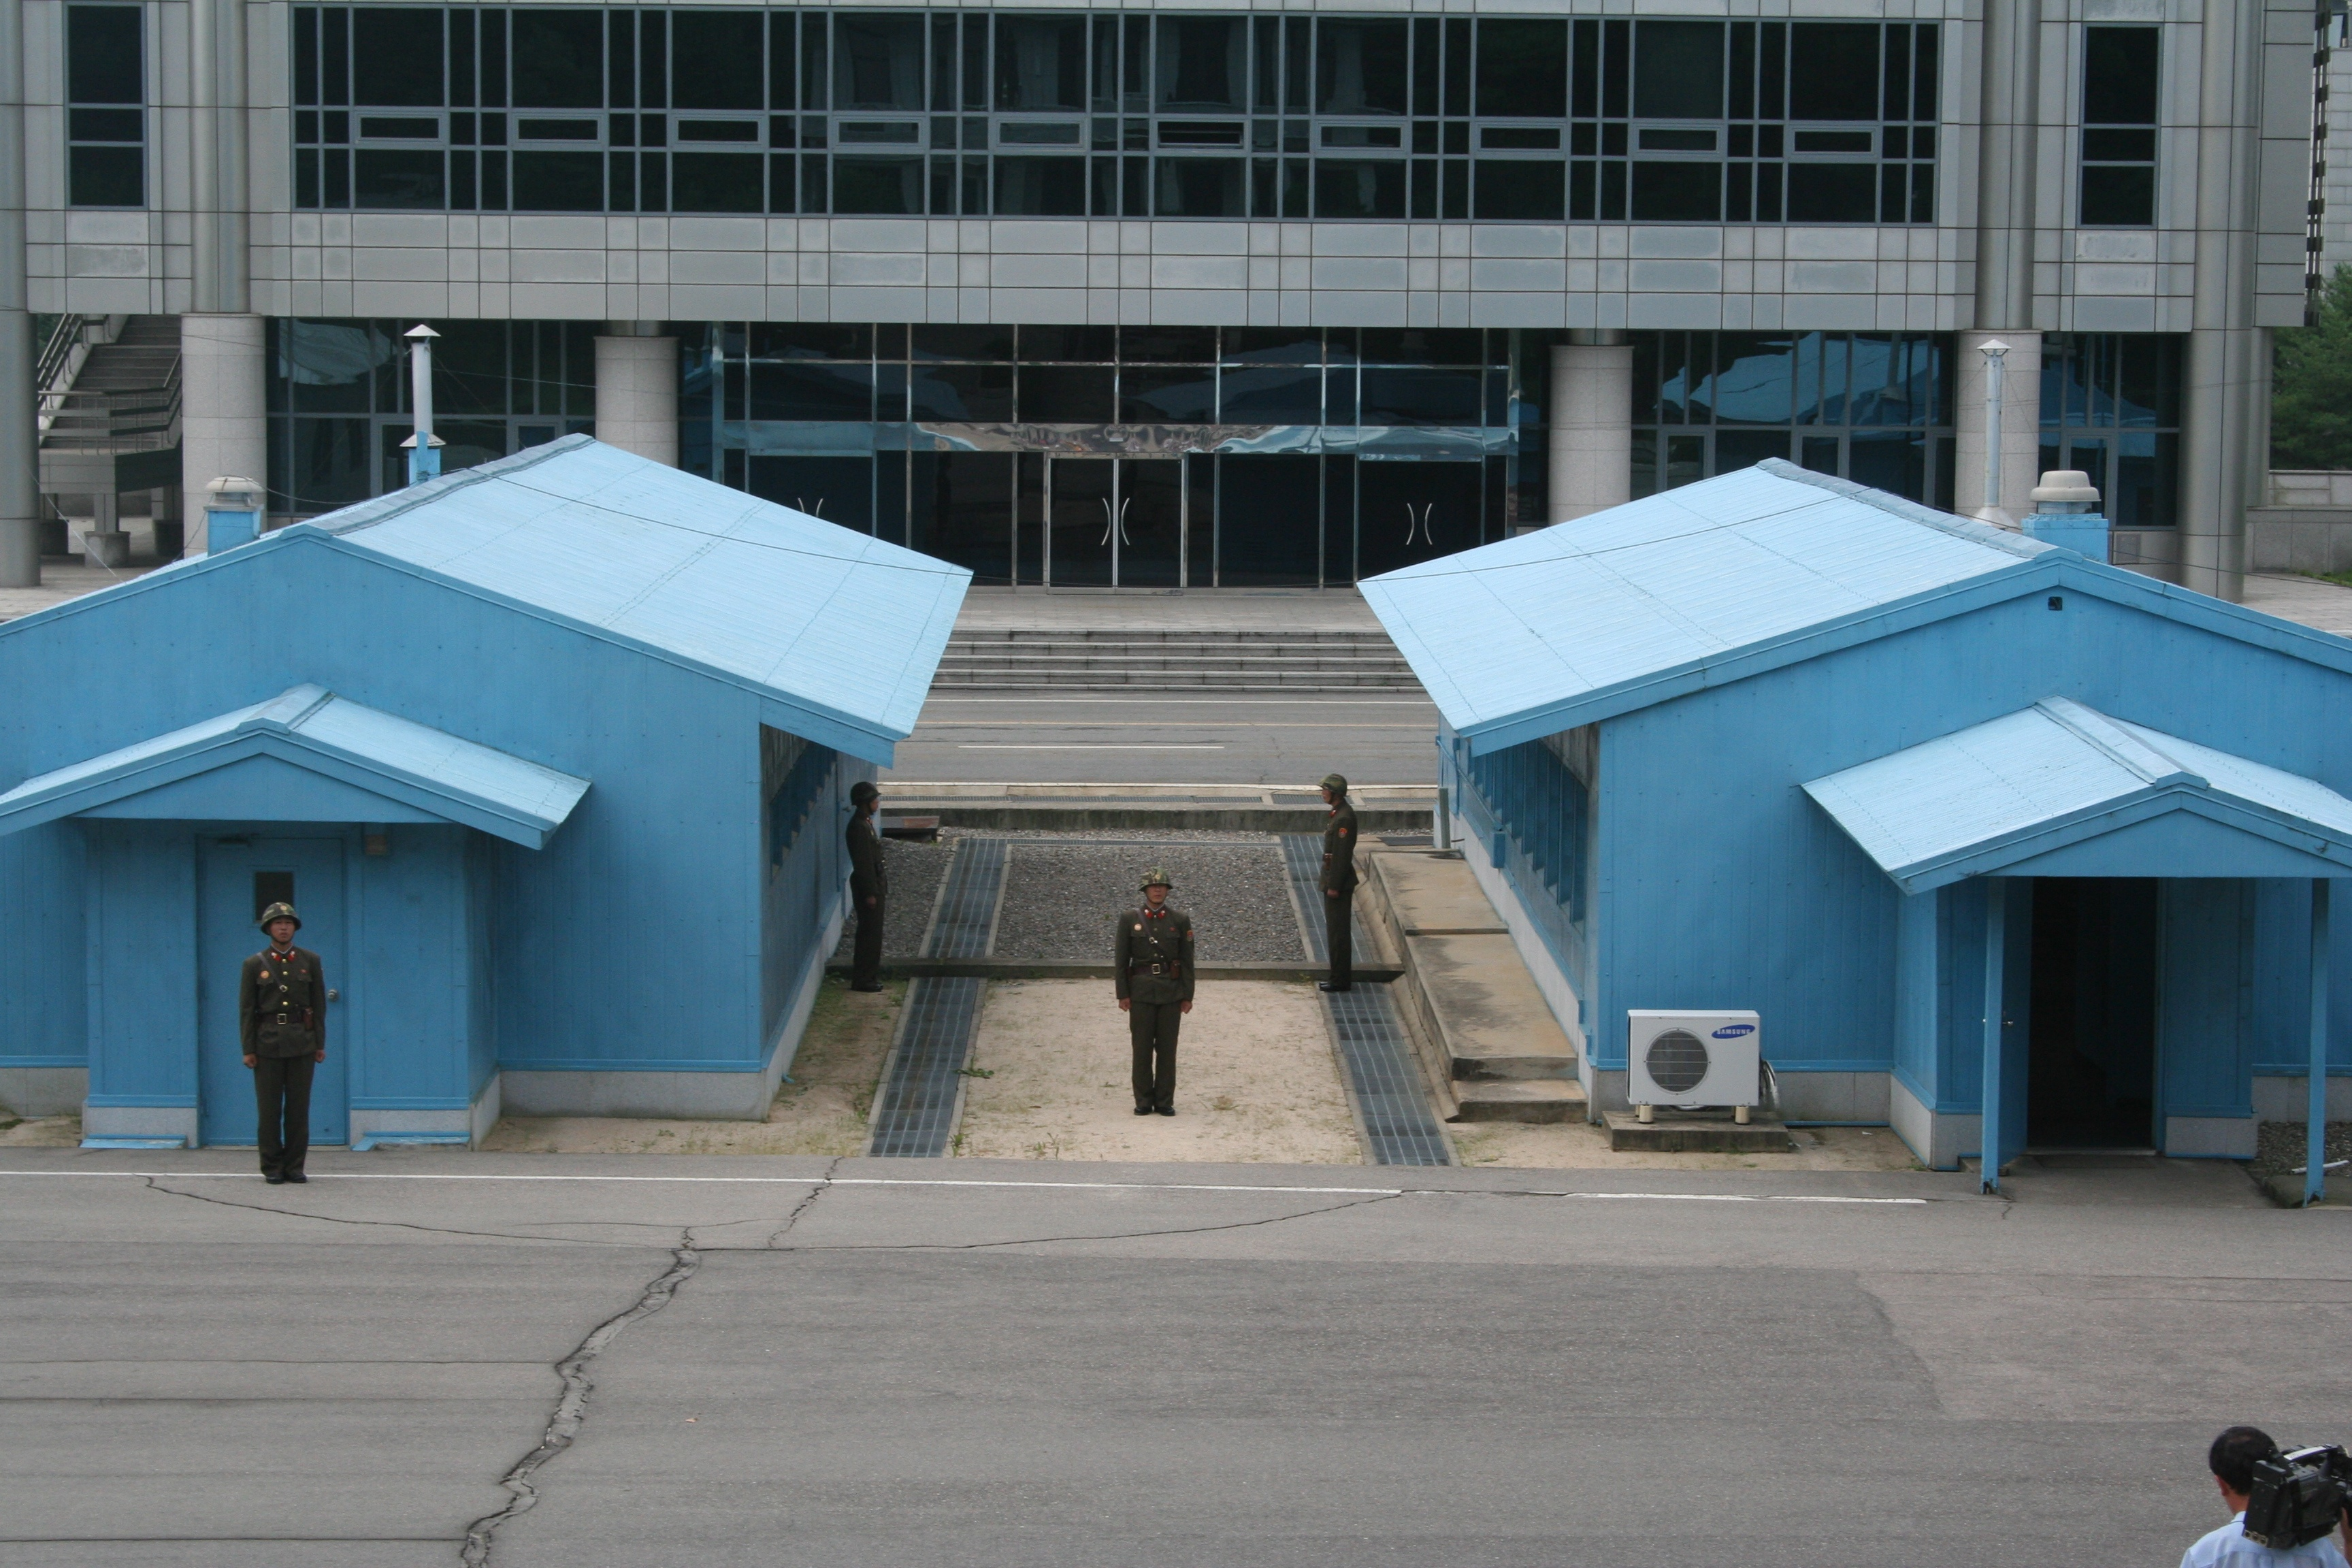 Pictures of north and south korea border 25 Beautiful Islamic Pictures with quot;s - m